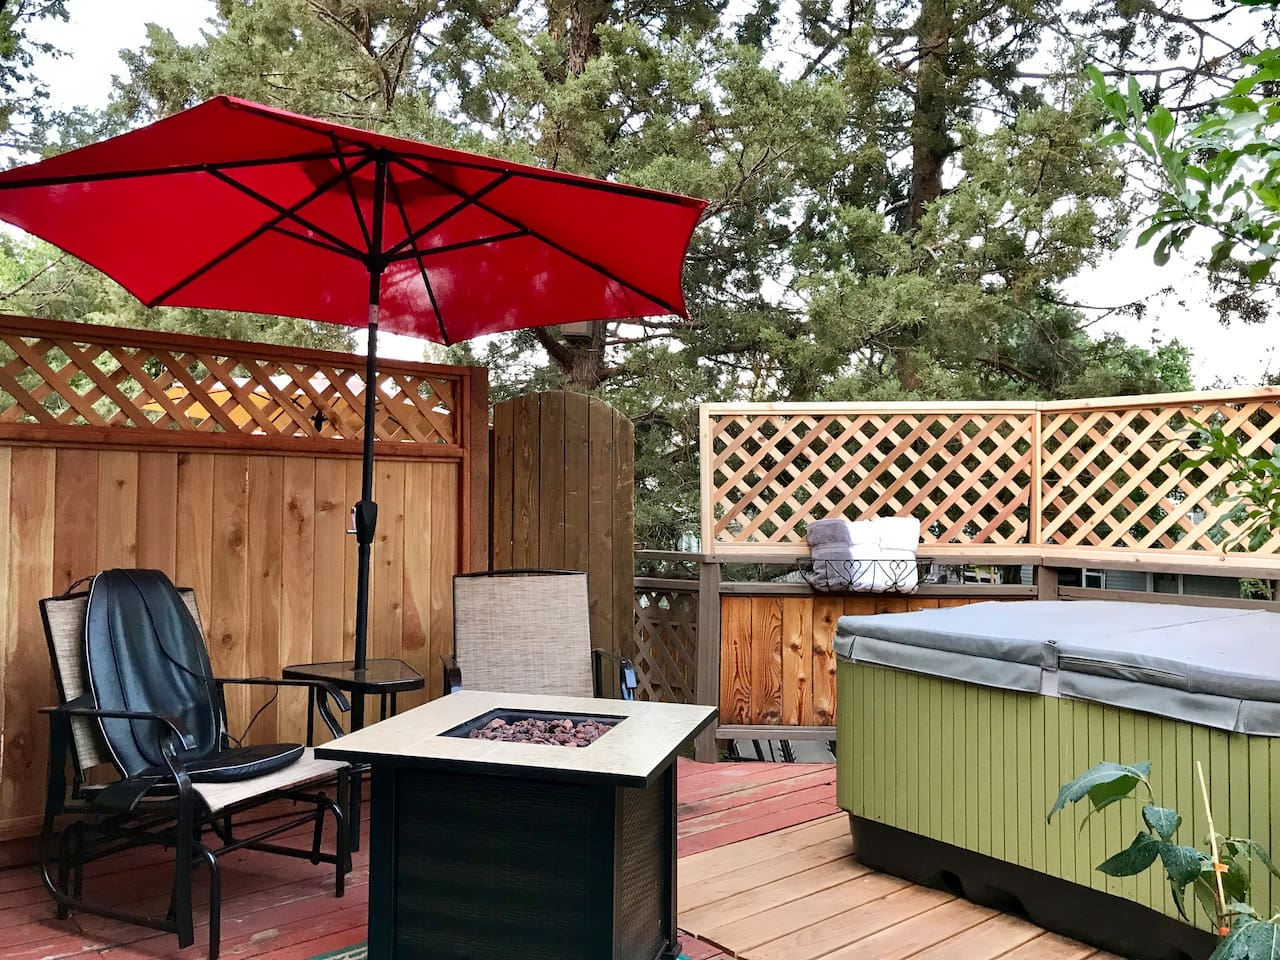 Propane fire, privacy, quaint hot tub and quiet.....a place to fully relax.....